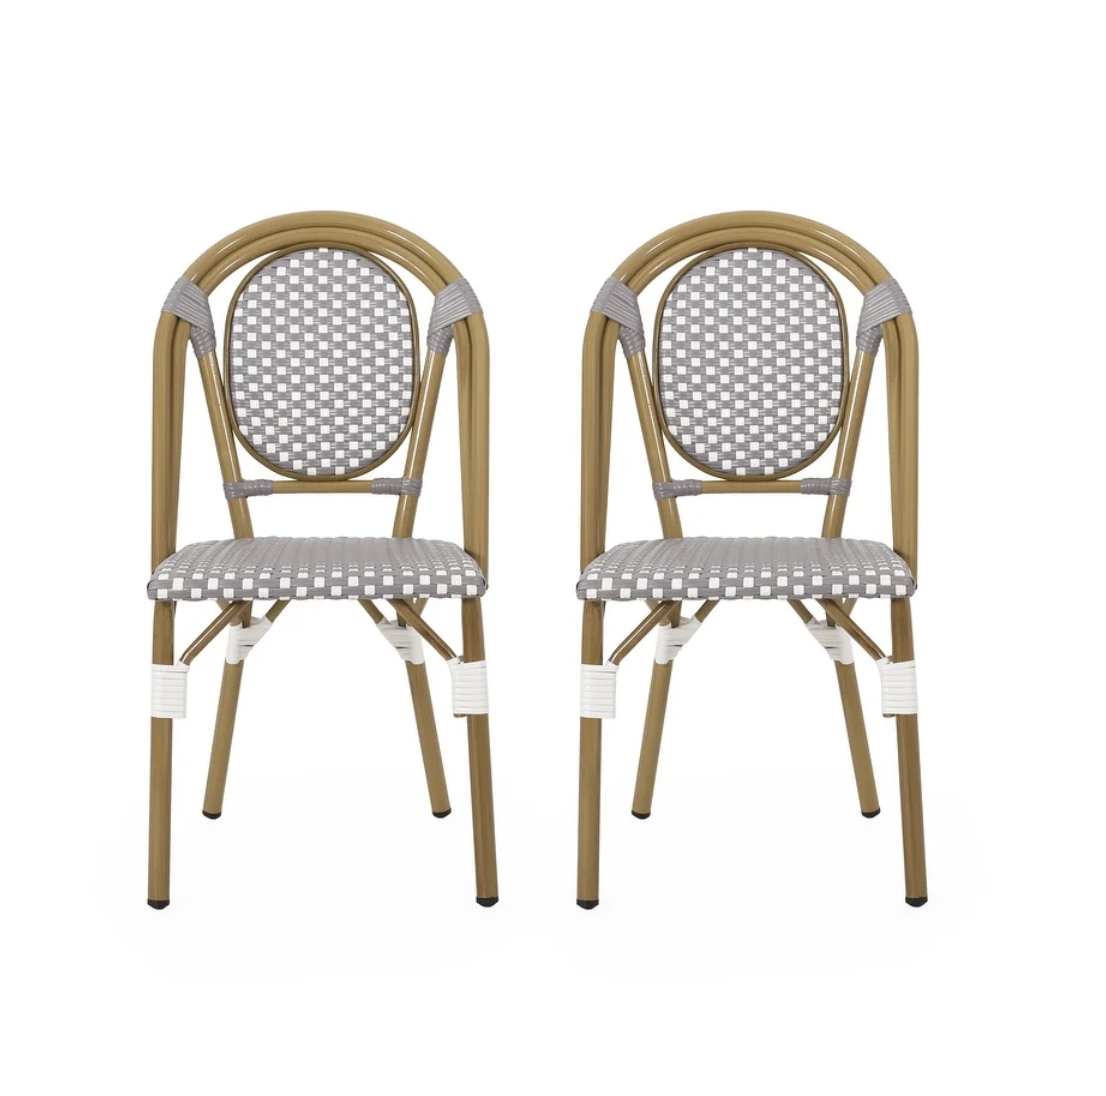 Remi Outdoor French Bistro Chairs (Set of 2) by Christopher Knight Home, Serena & Lily Riviera Side Chair Dupes, Serena & Lily Riviera Counter Stool Dupes, Serena & Lily dupes, Serena & Lily look for less, rattan dining chairs, bistro dining chairs, rattan counter stools, bistro counter stools, interior designs, dining chair ideas, counter stool ideas, on trend dining chairs, on trend counter stools, kitchen ideas, kitchen designs, dining room ideas, Red Soles and Red Wine, Jennifer Worman